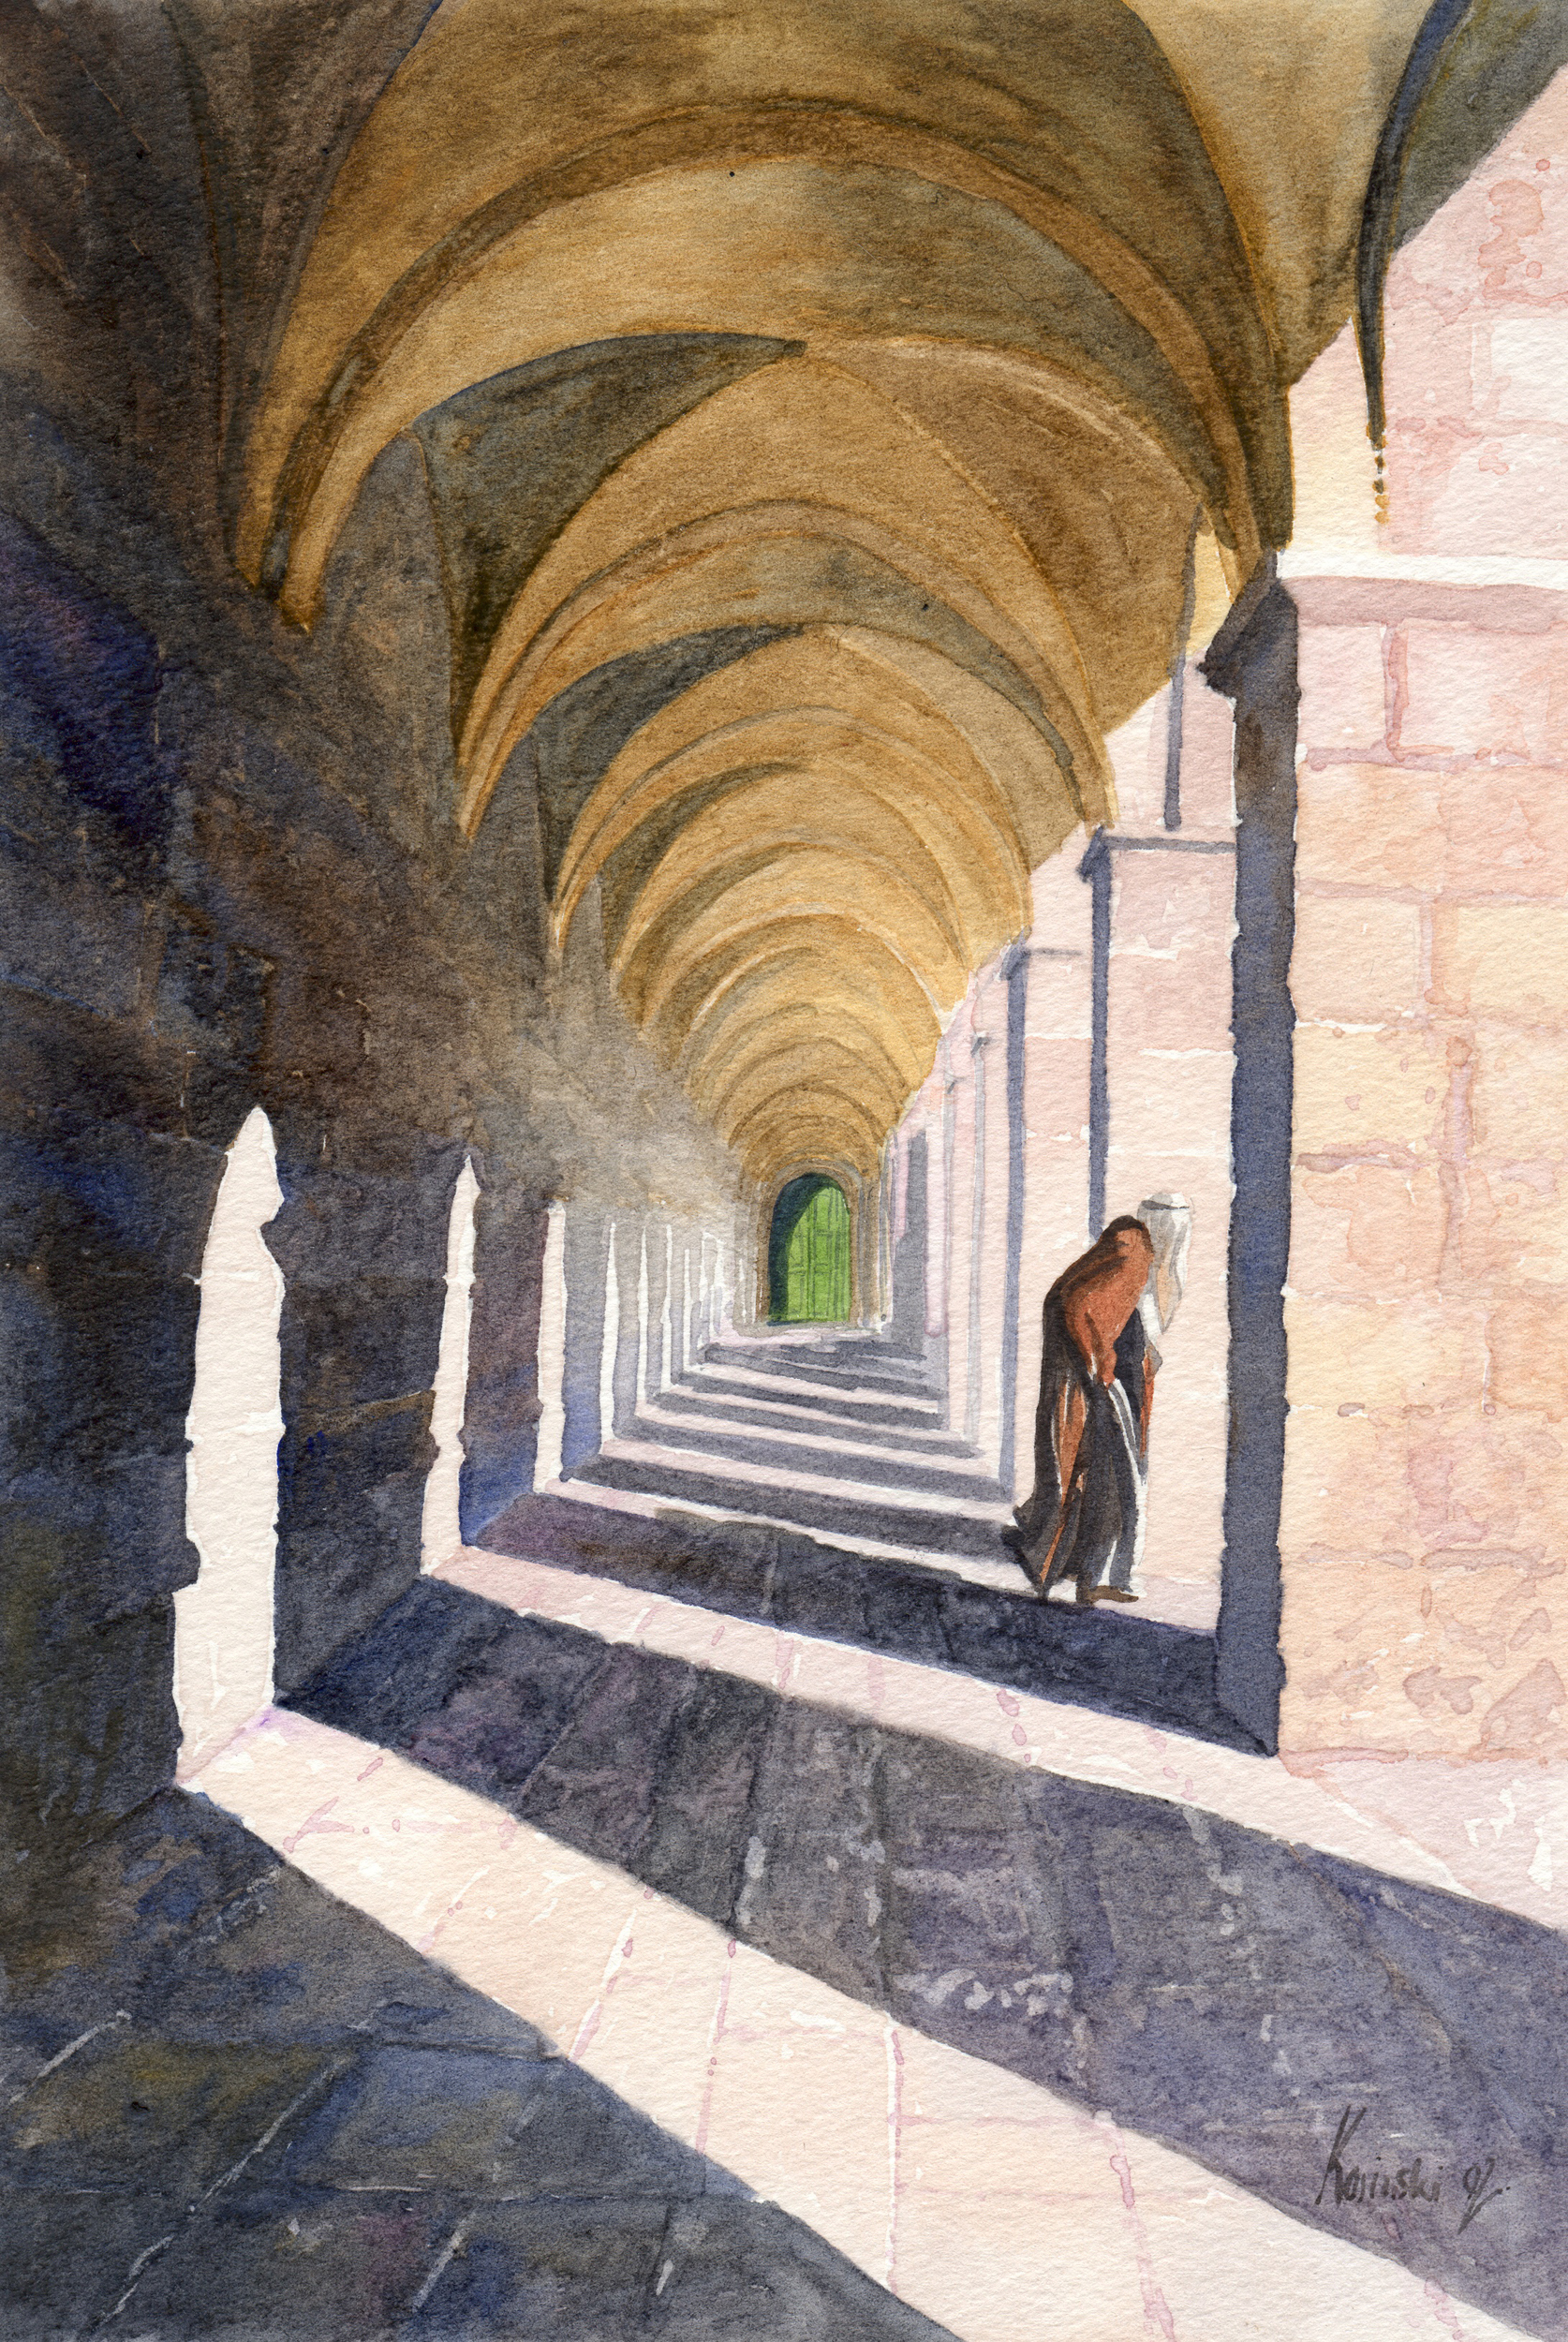 Portico over the Western Wall, Jerusalem